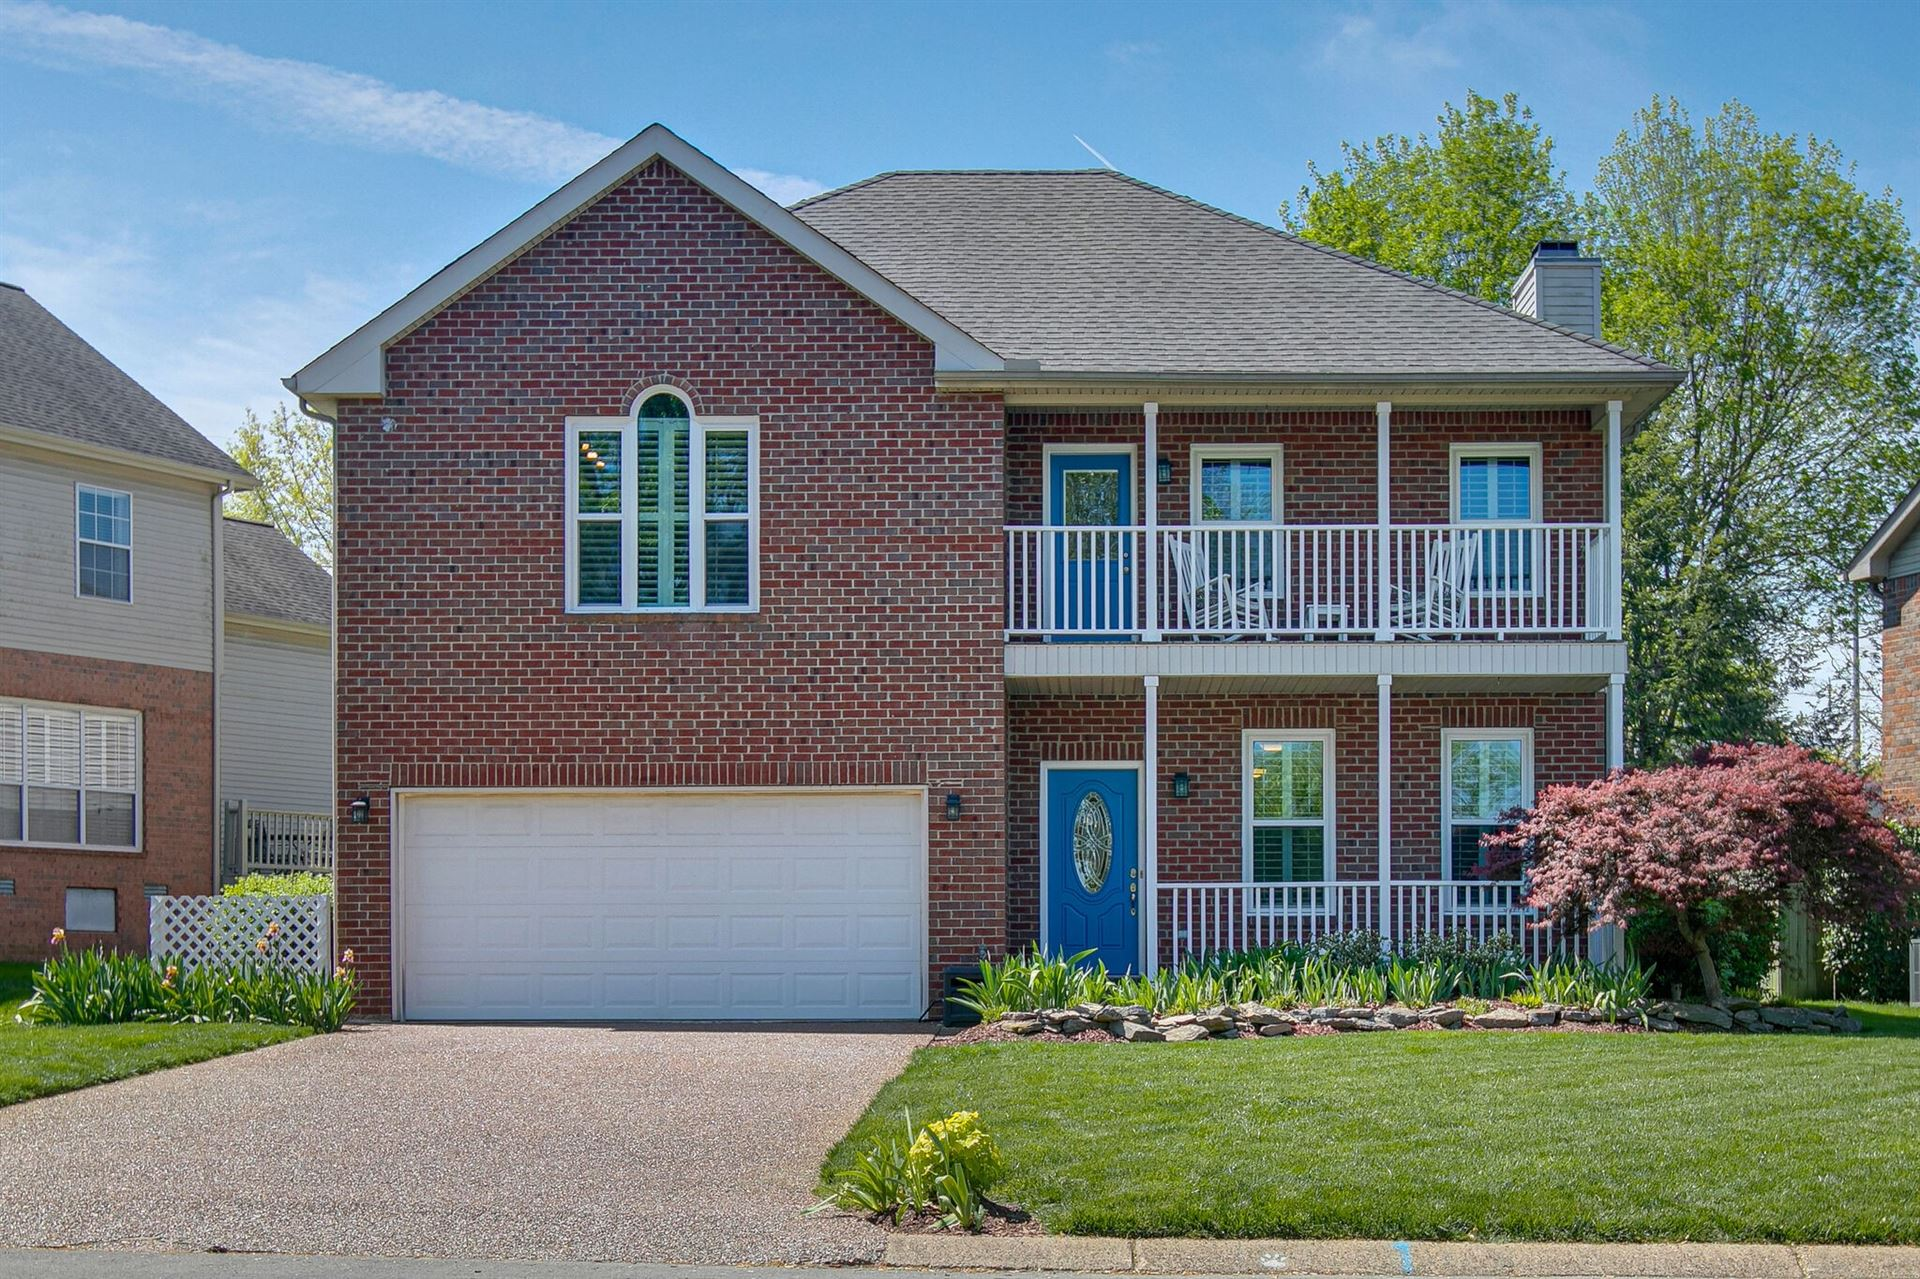 Photo of 261 Freedom Dr, Franklin, TN 37067 (MLS # 2245987)